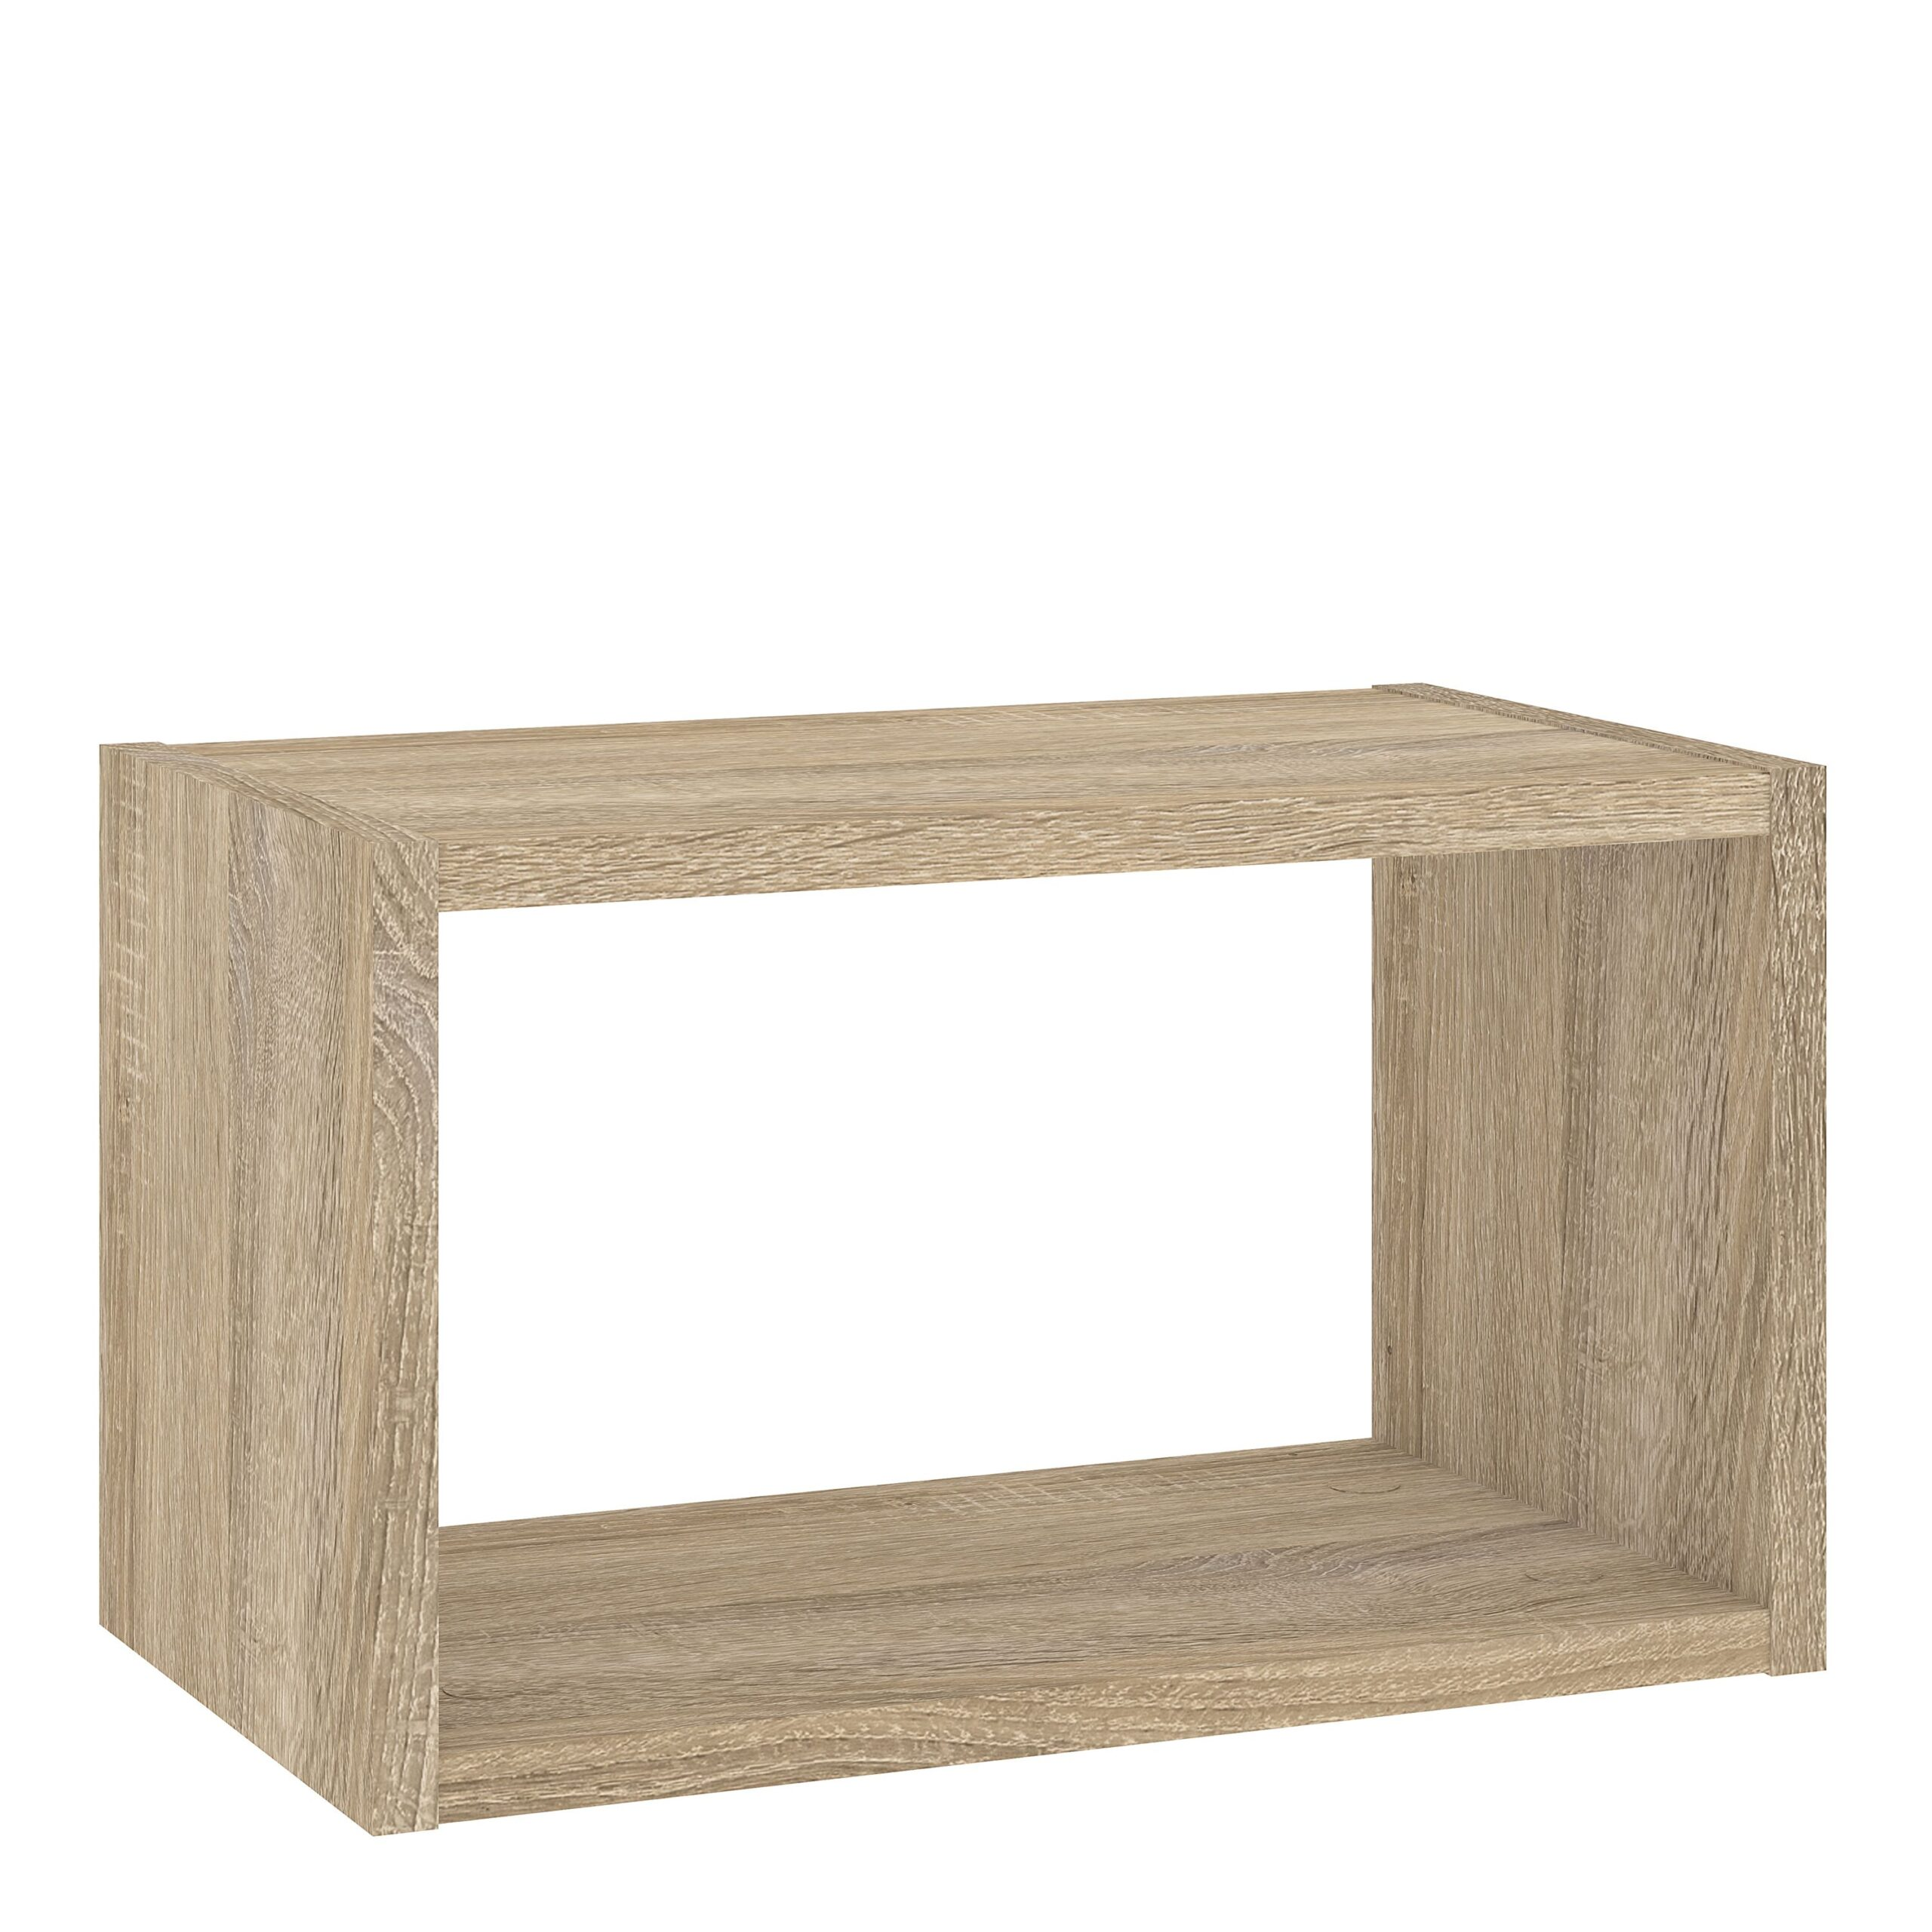 Ramen Wall Shelf Unity in Oak